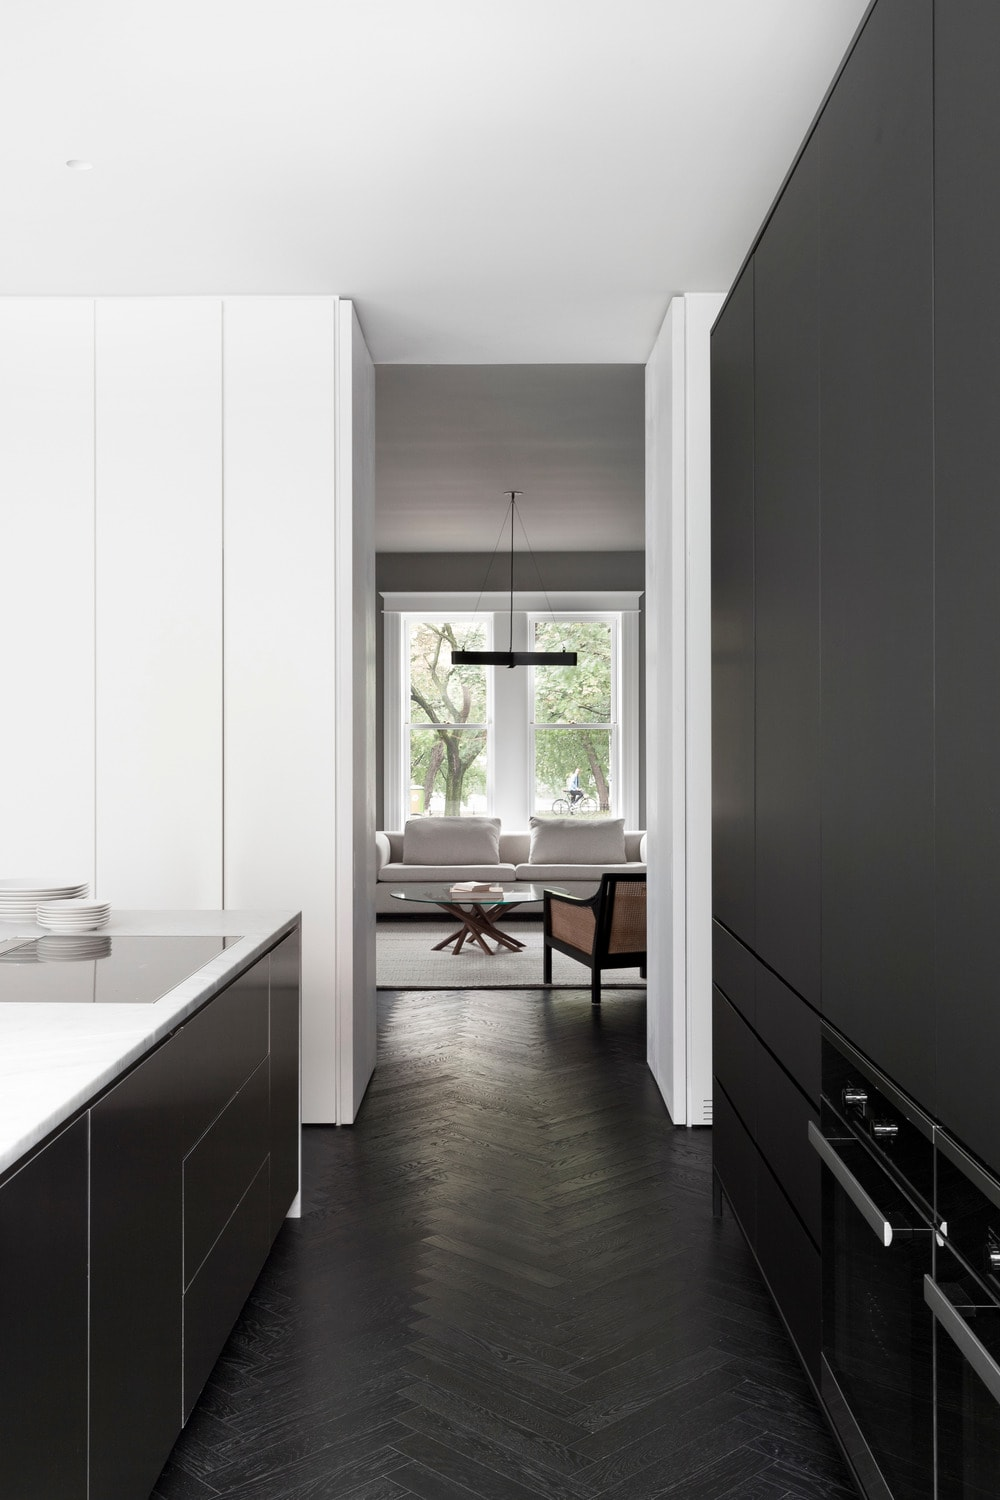 The kitchen has a direct access to the living room as can be seen on the far end of the long and narrow kitchen with black cabinetry and black flooring.